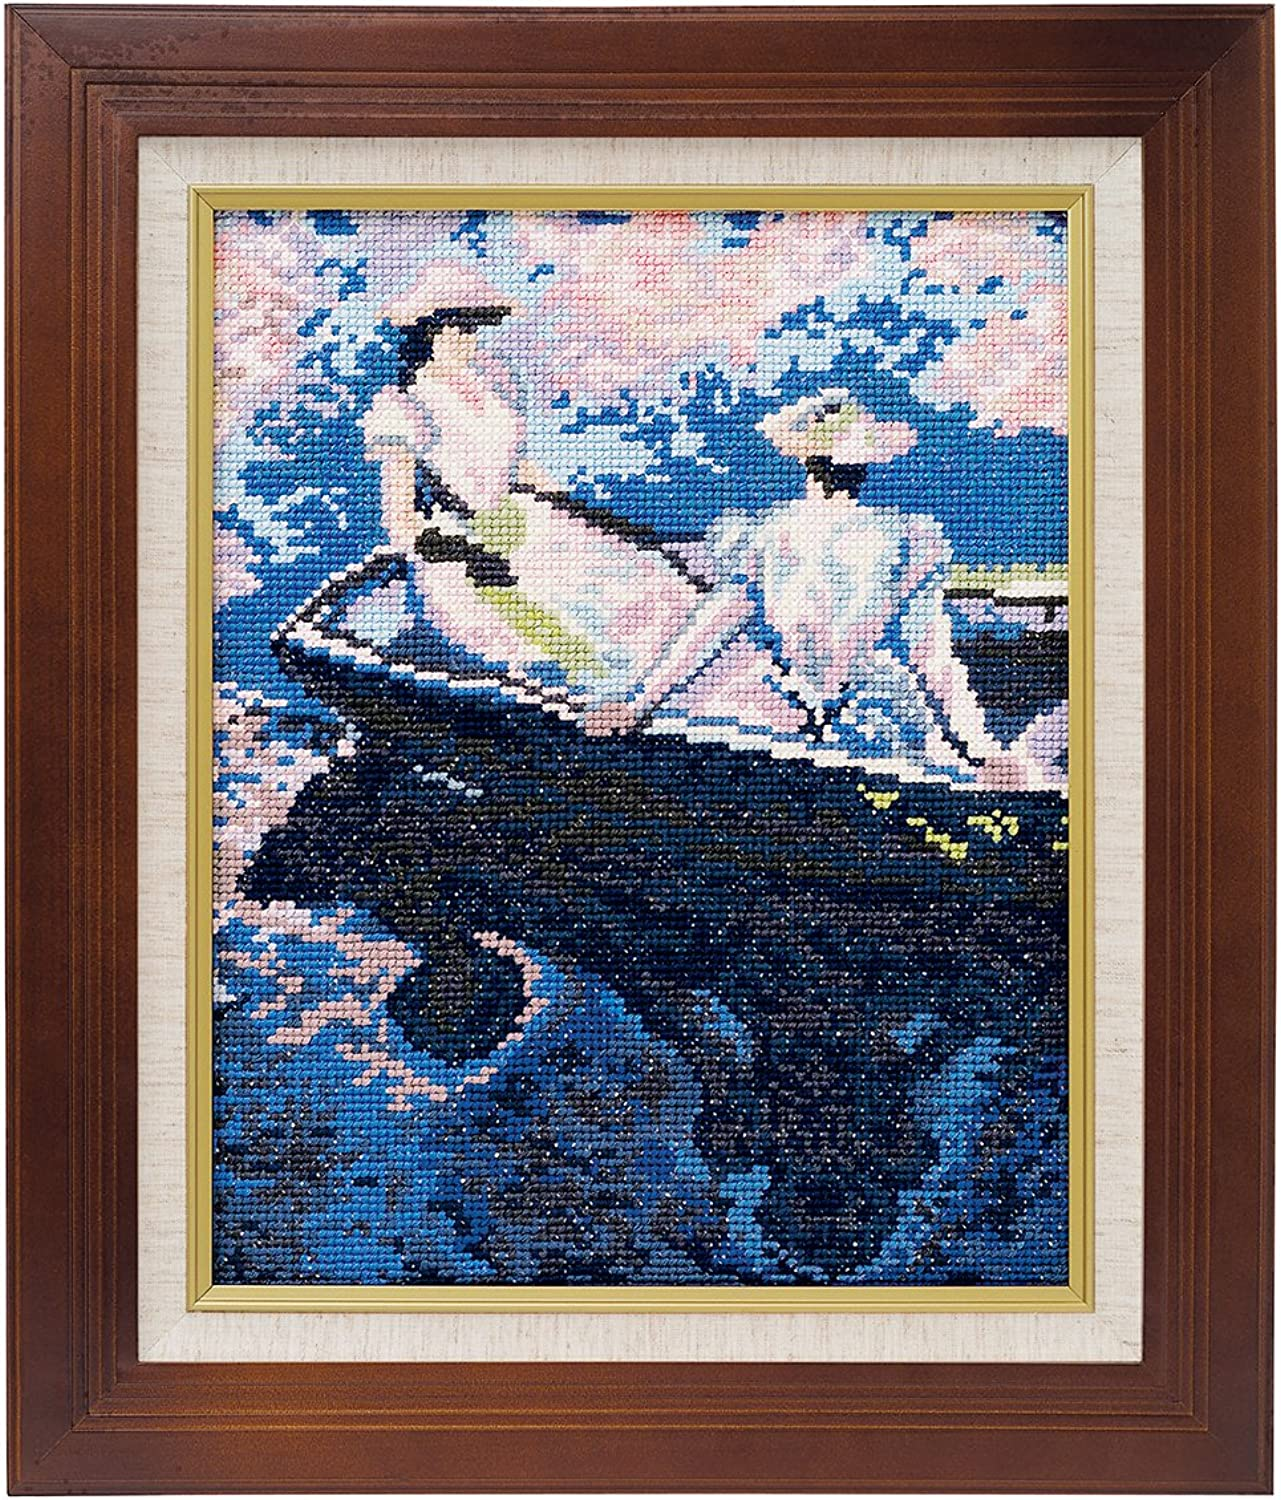 Embroidery kit 877 (Beige) Art Gallery  boating  Monet work 4480g (Japan import   The package and the manual are written in Japanese)